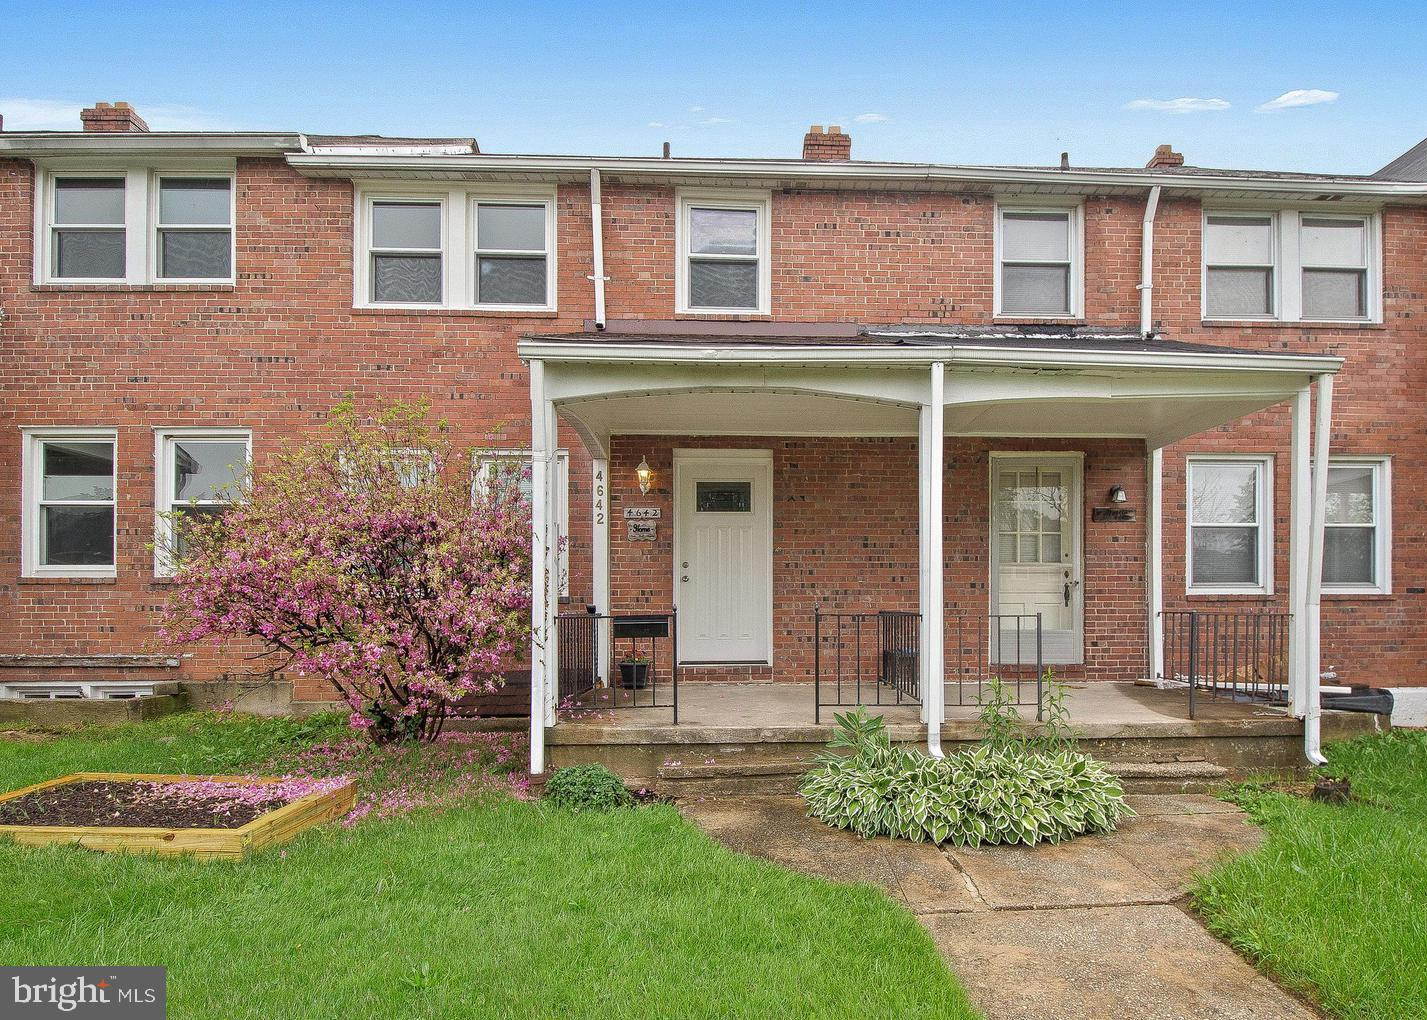 4642 MARBLE HALL ROAD, BALTIMORE, MD 21239